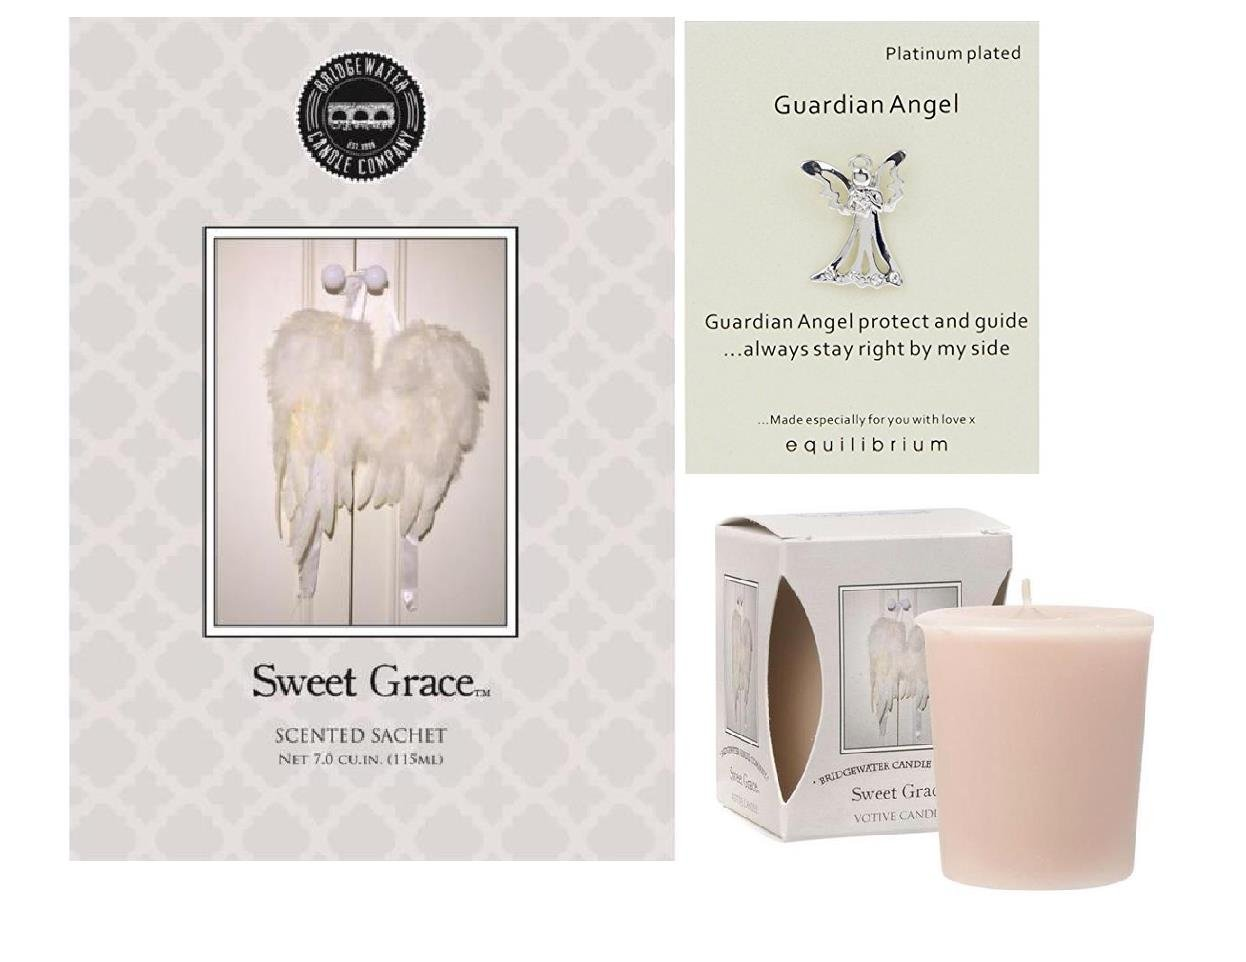 Pack of 3 Guardian Angel Sweet Grace Scented Sachet Votive Candle Set Bridgewater equilibrium